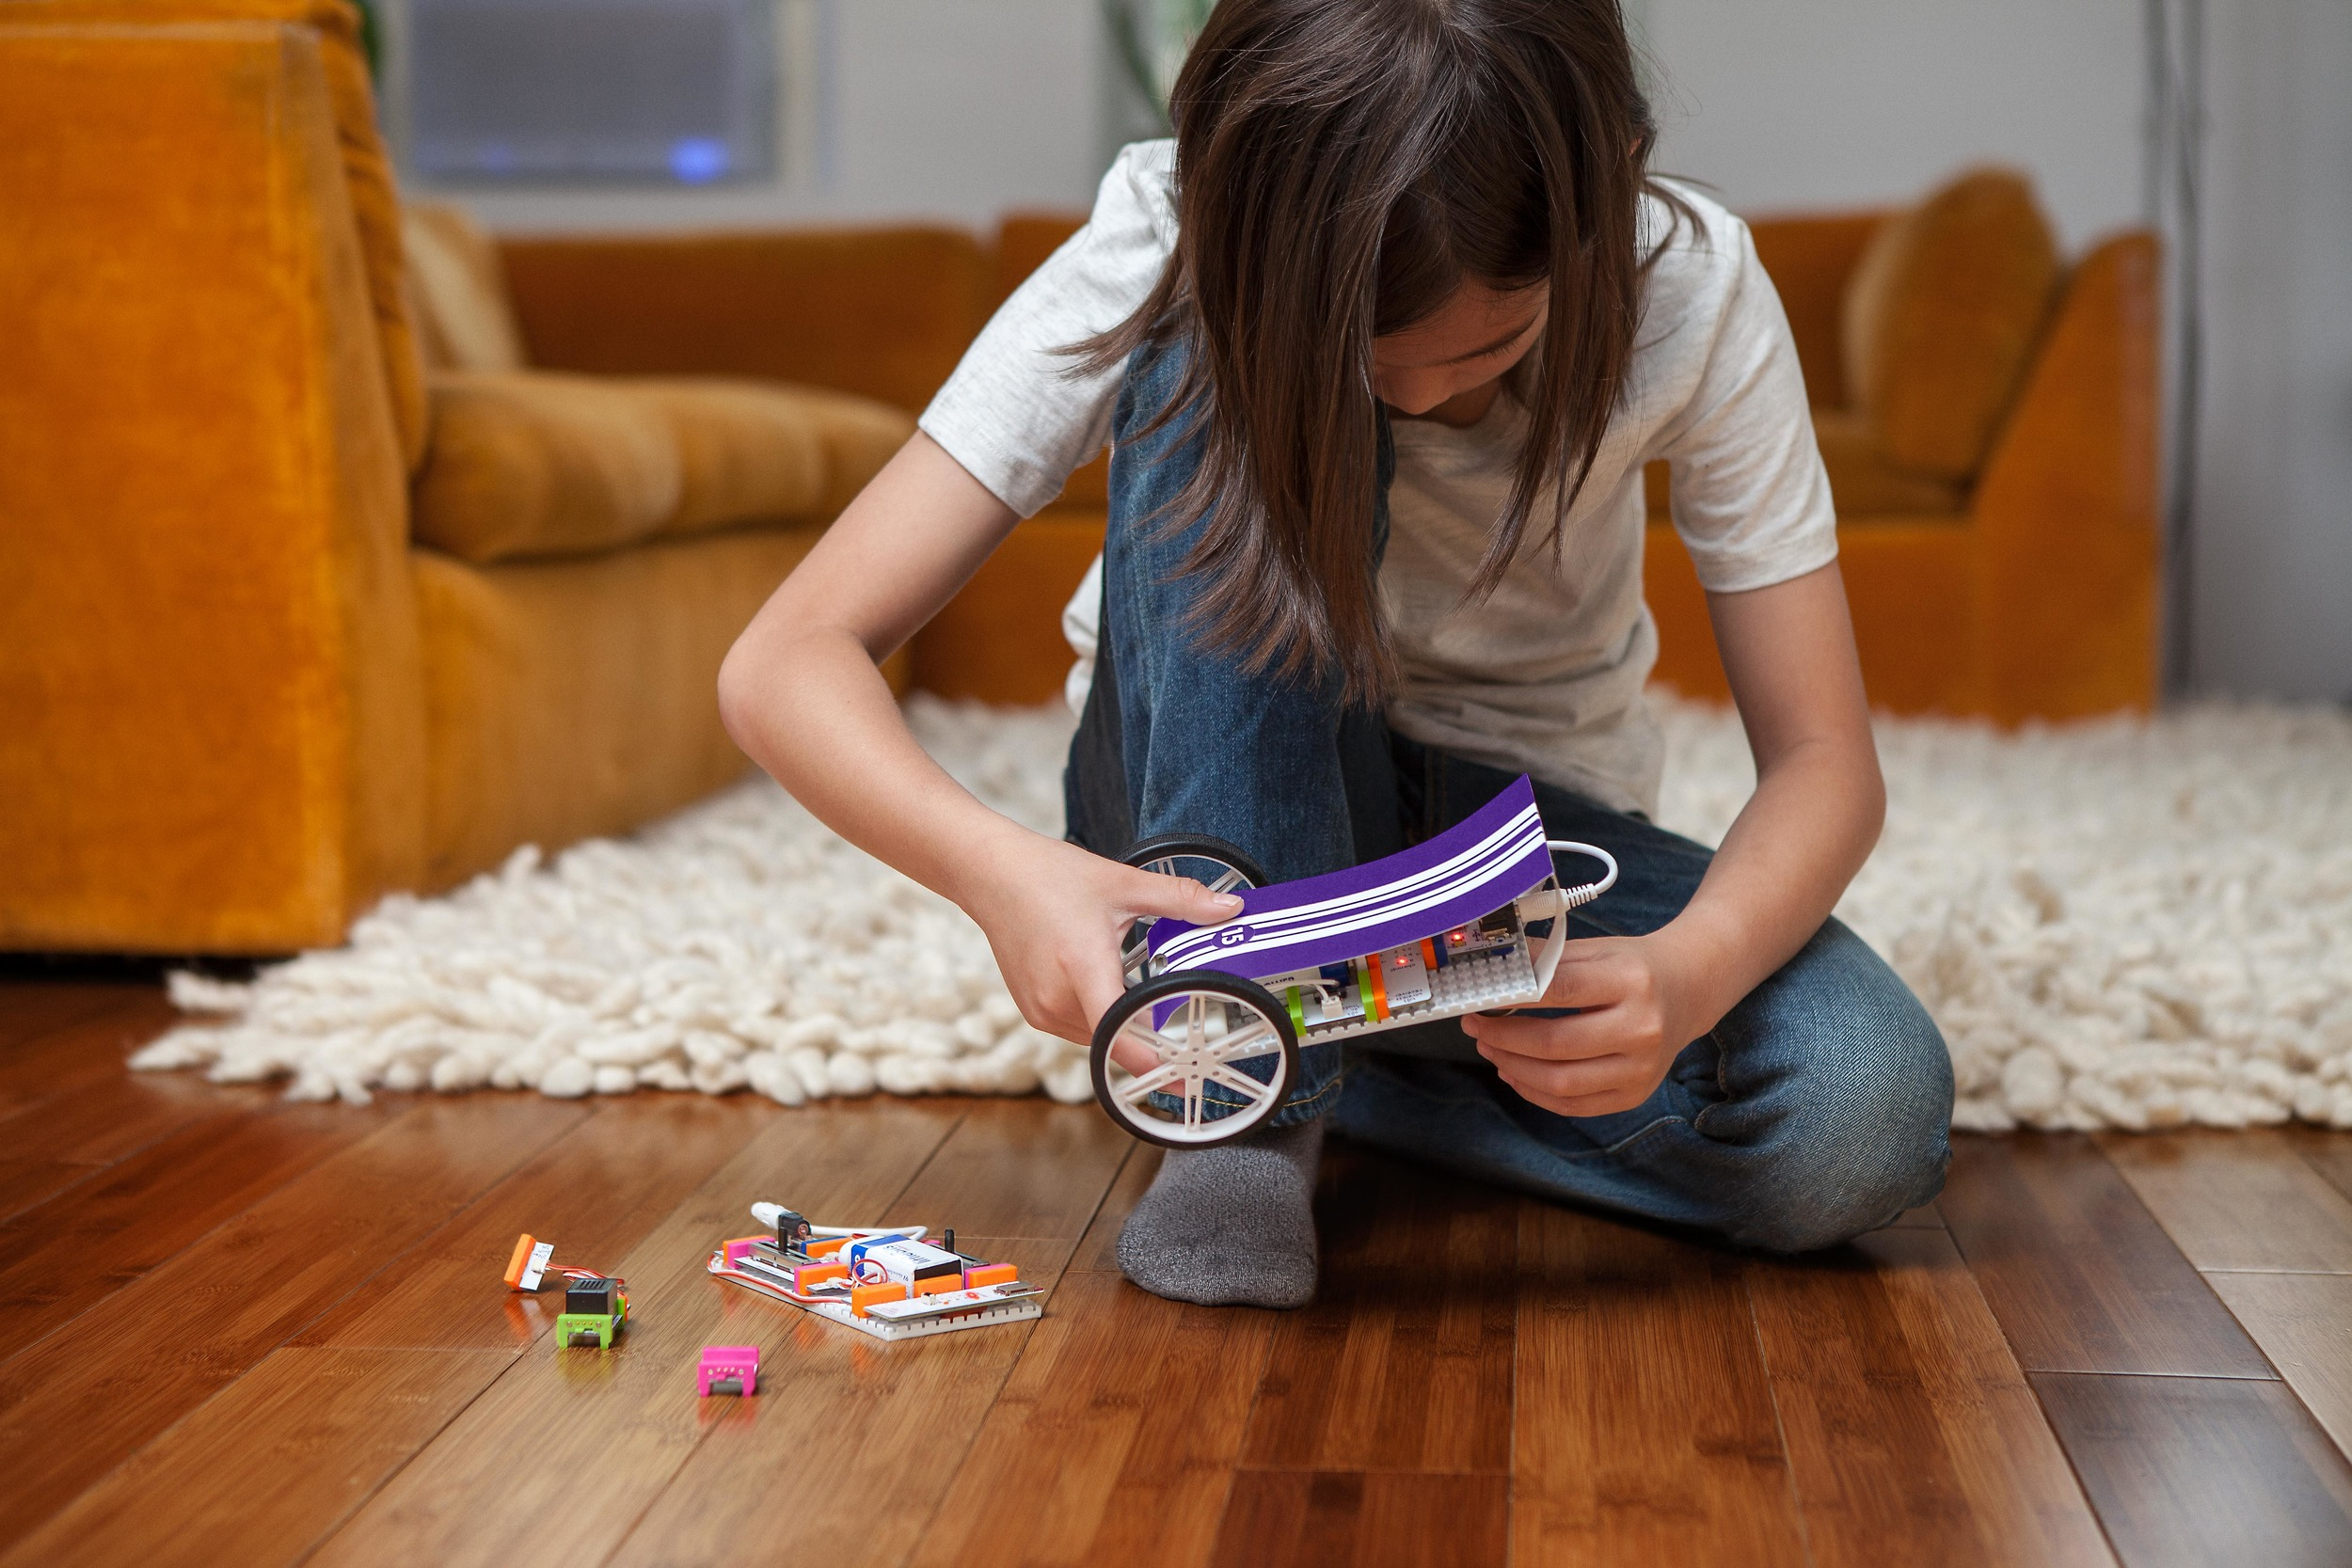 Littlebits_Lifestyle_July_01_20151062-KR.jpg